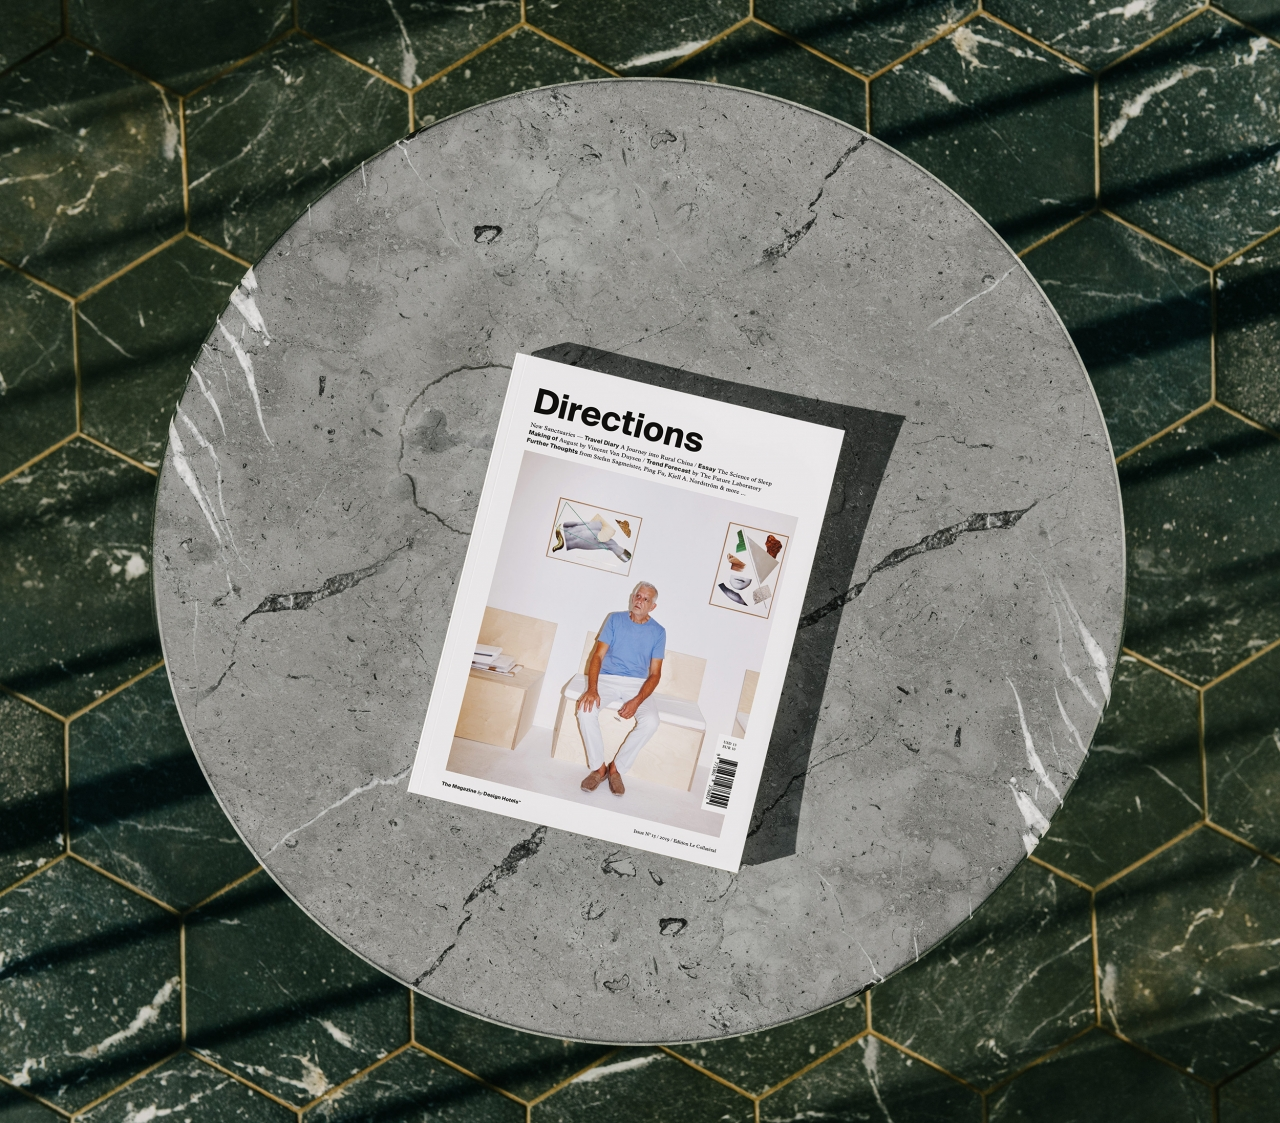 Directions - The Magazine by Design Hotels